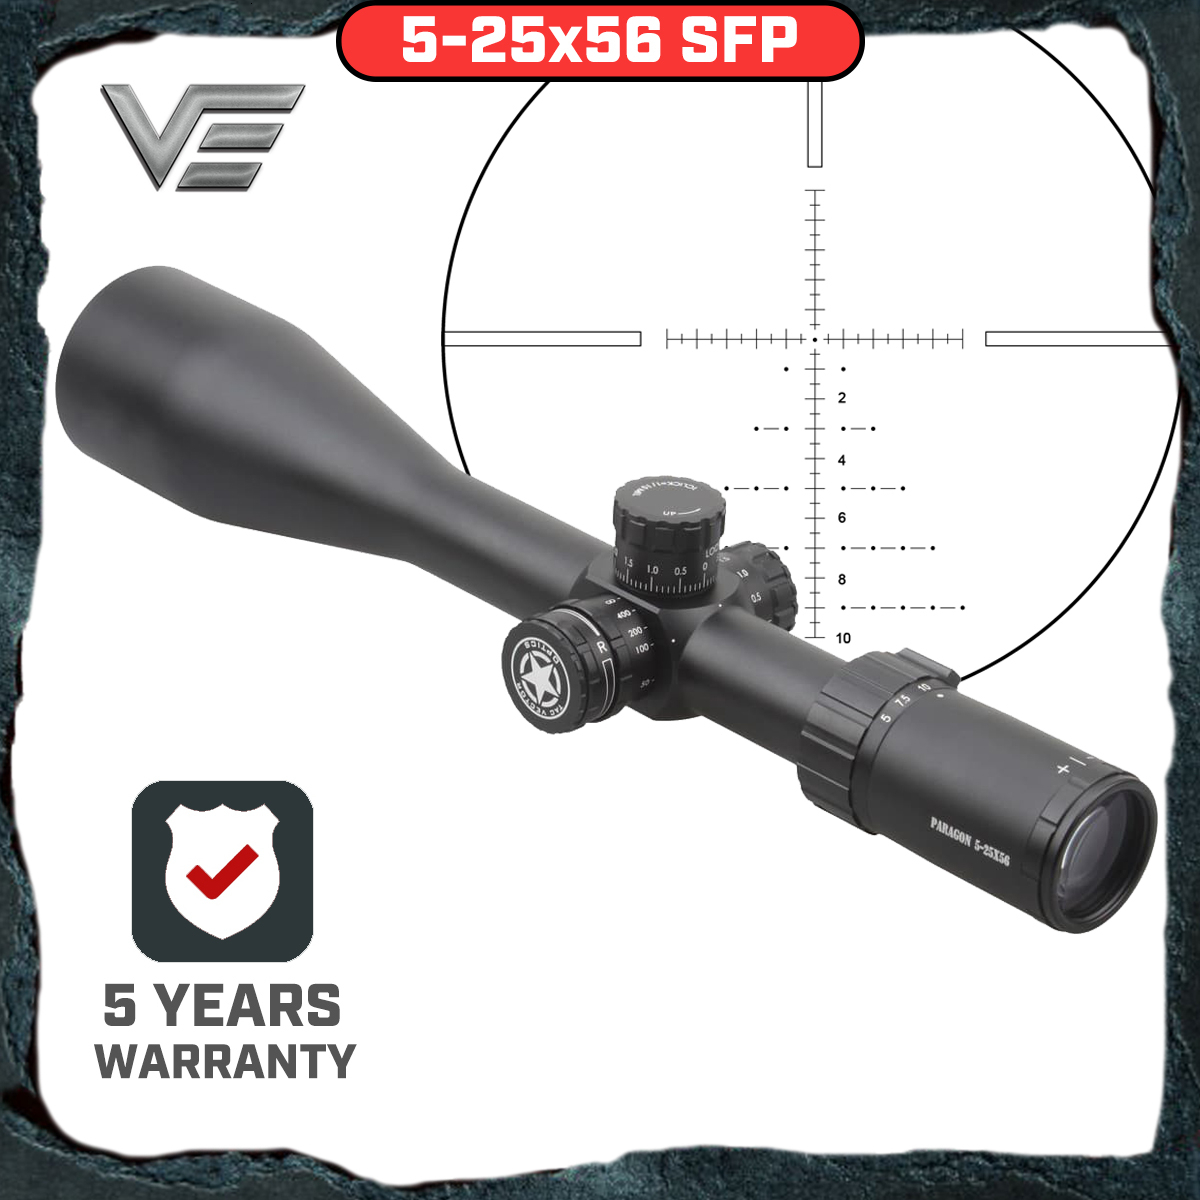 Vector Optics Paragon 5-25x56 Tactical Riflescope Telescopic Sight With High Quality German Glass Reticle , Honeycomb Sunshade